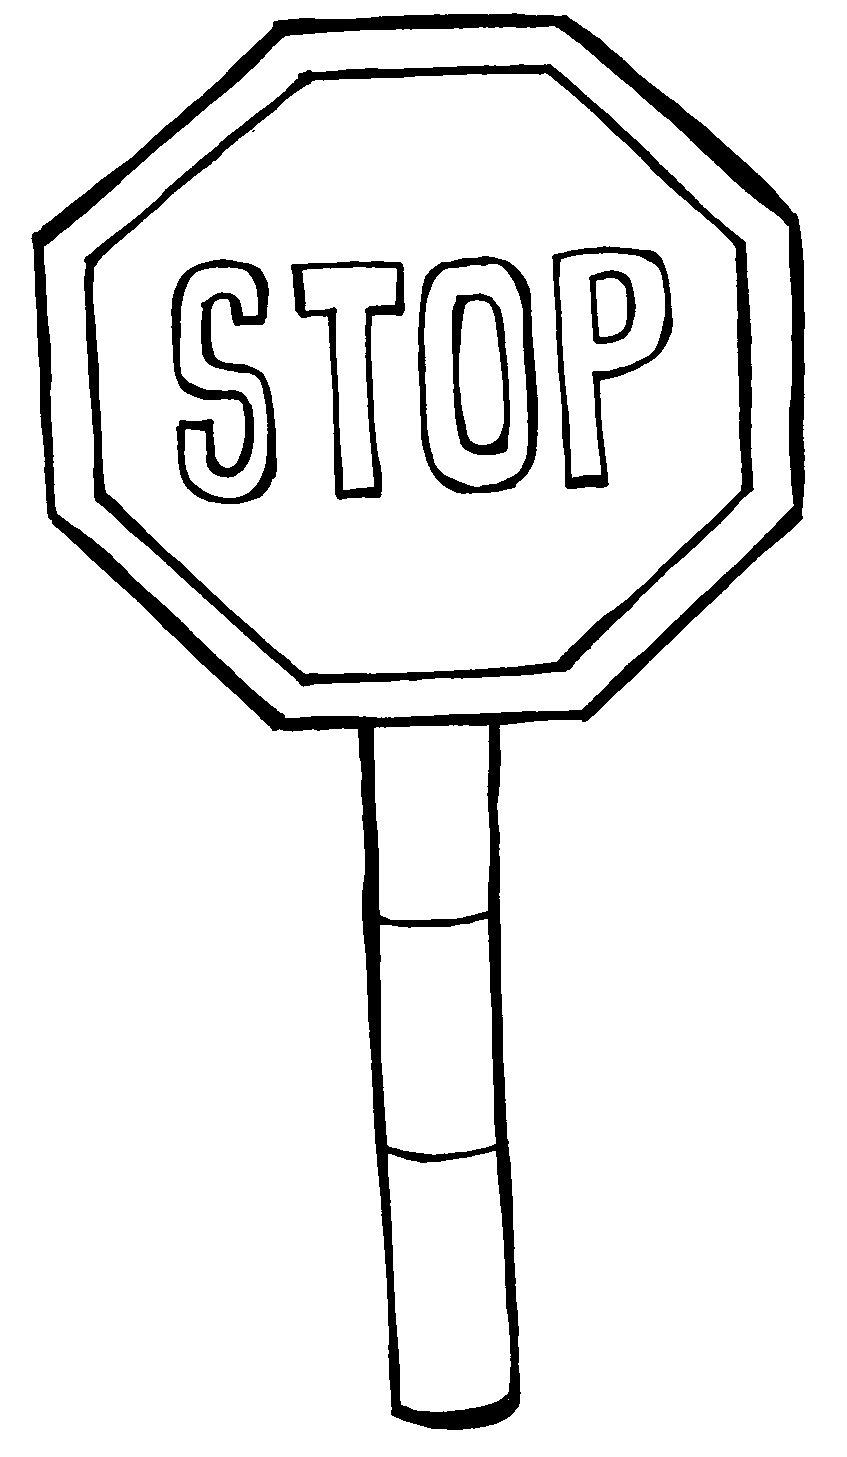 traffic sign coloring pages - photo#34